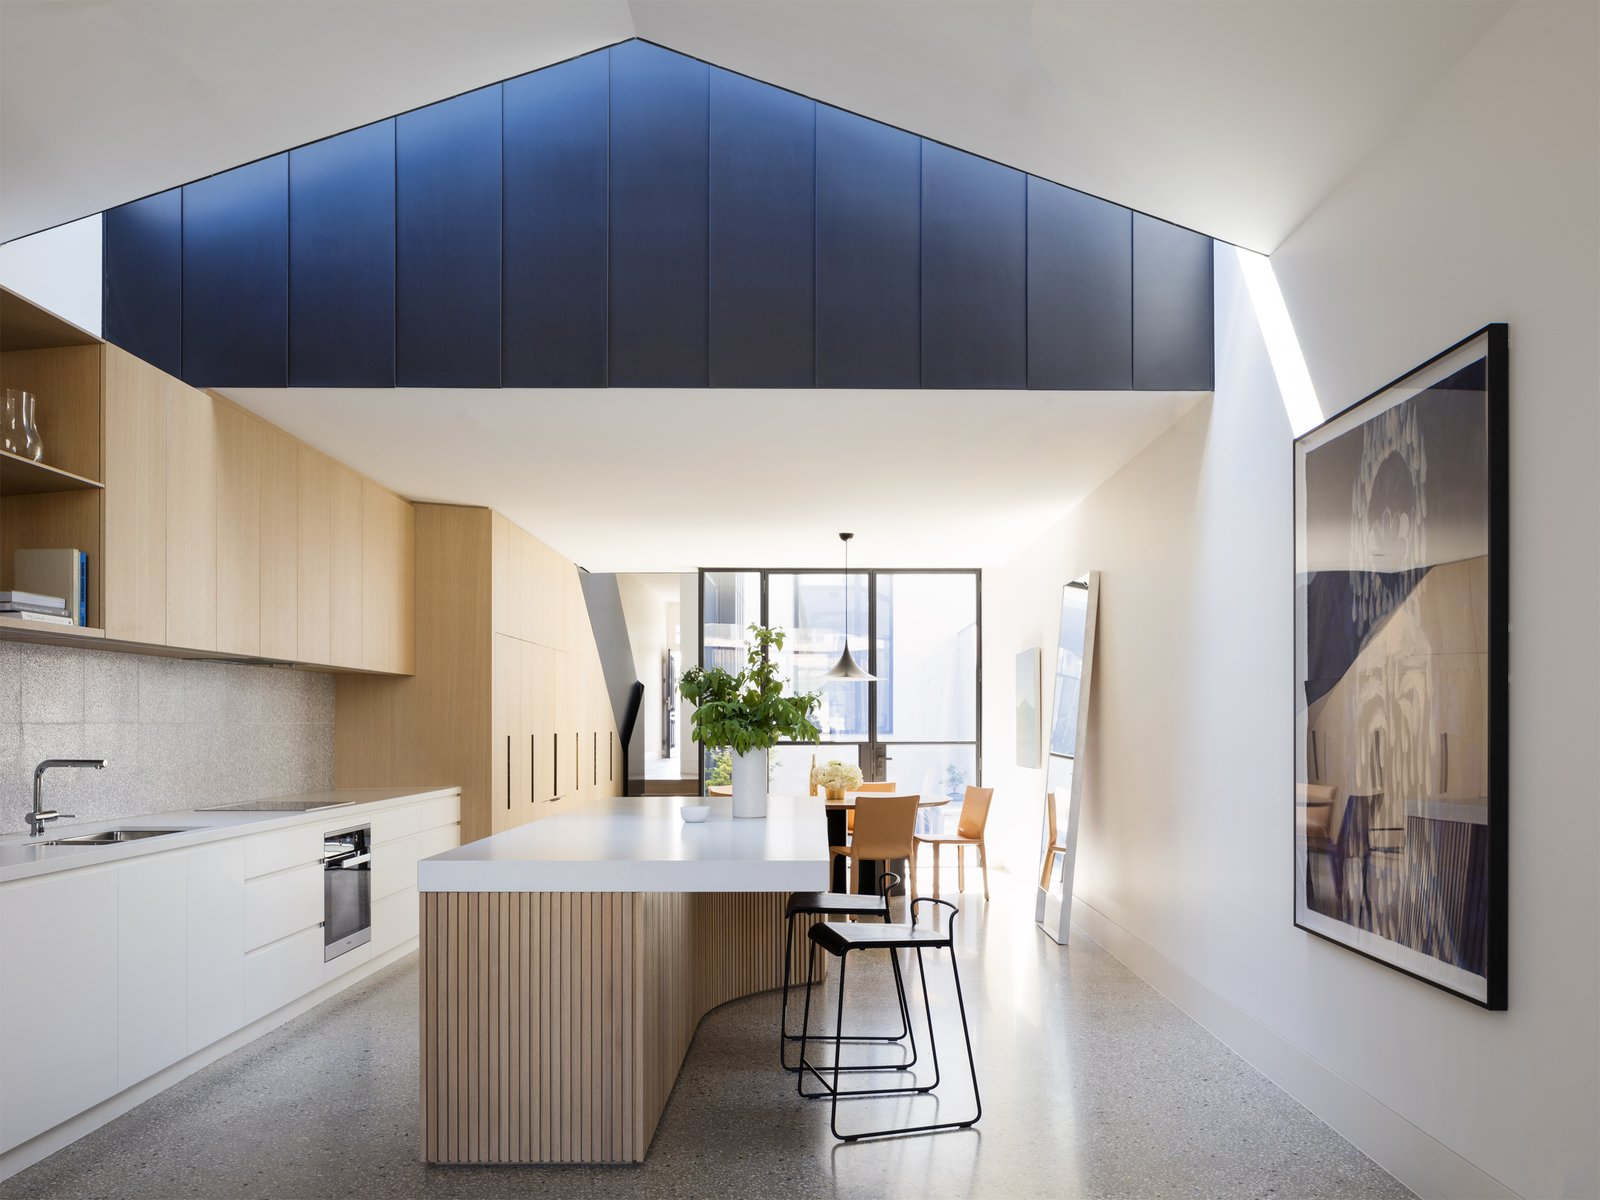 Kitchen, Wood Cabinet, Undermount Sink, Wall Oven, and Pendant Lighting The firm then combined a palette of steel, concrete, and oak in the elegant, double-height rear addition.   Photo 3 of 10 in Dwell's Top 10 Kitchens of 2017 from Soak In the Greatness of This Gorgeous Melbourne Addition